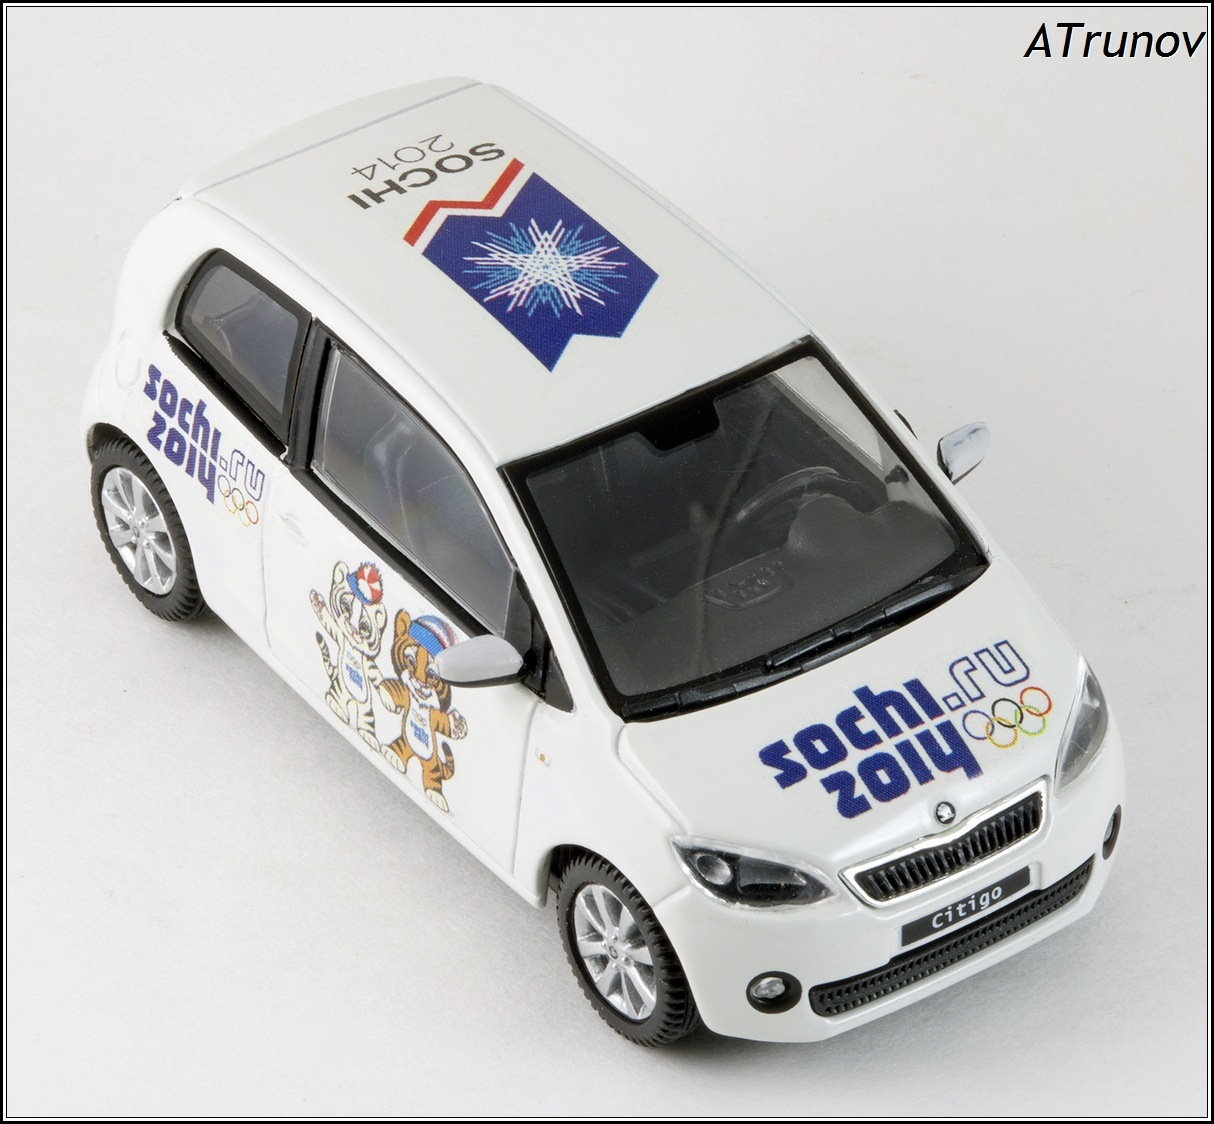 Abrex: 2011 Skoda Citigo Sochi 2014 Olympic - White (143AB-021E) in 1:43 scale . Picture provided by Natty, 2015-01-13 01:30:17